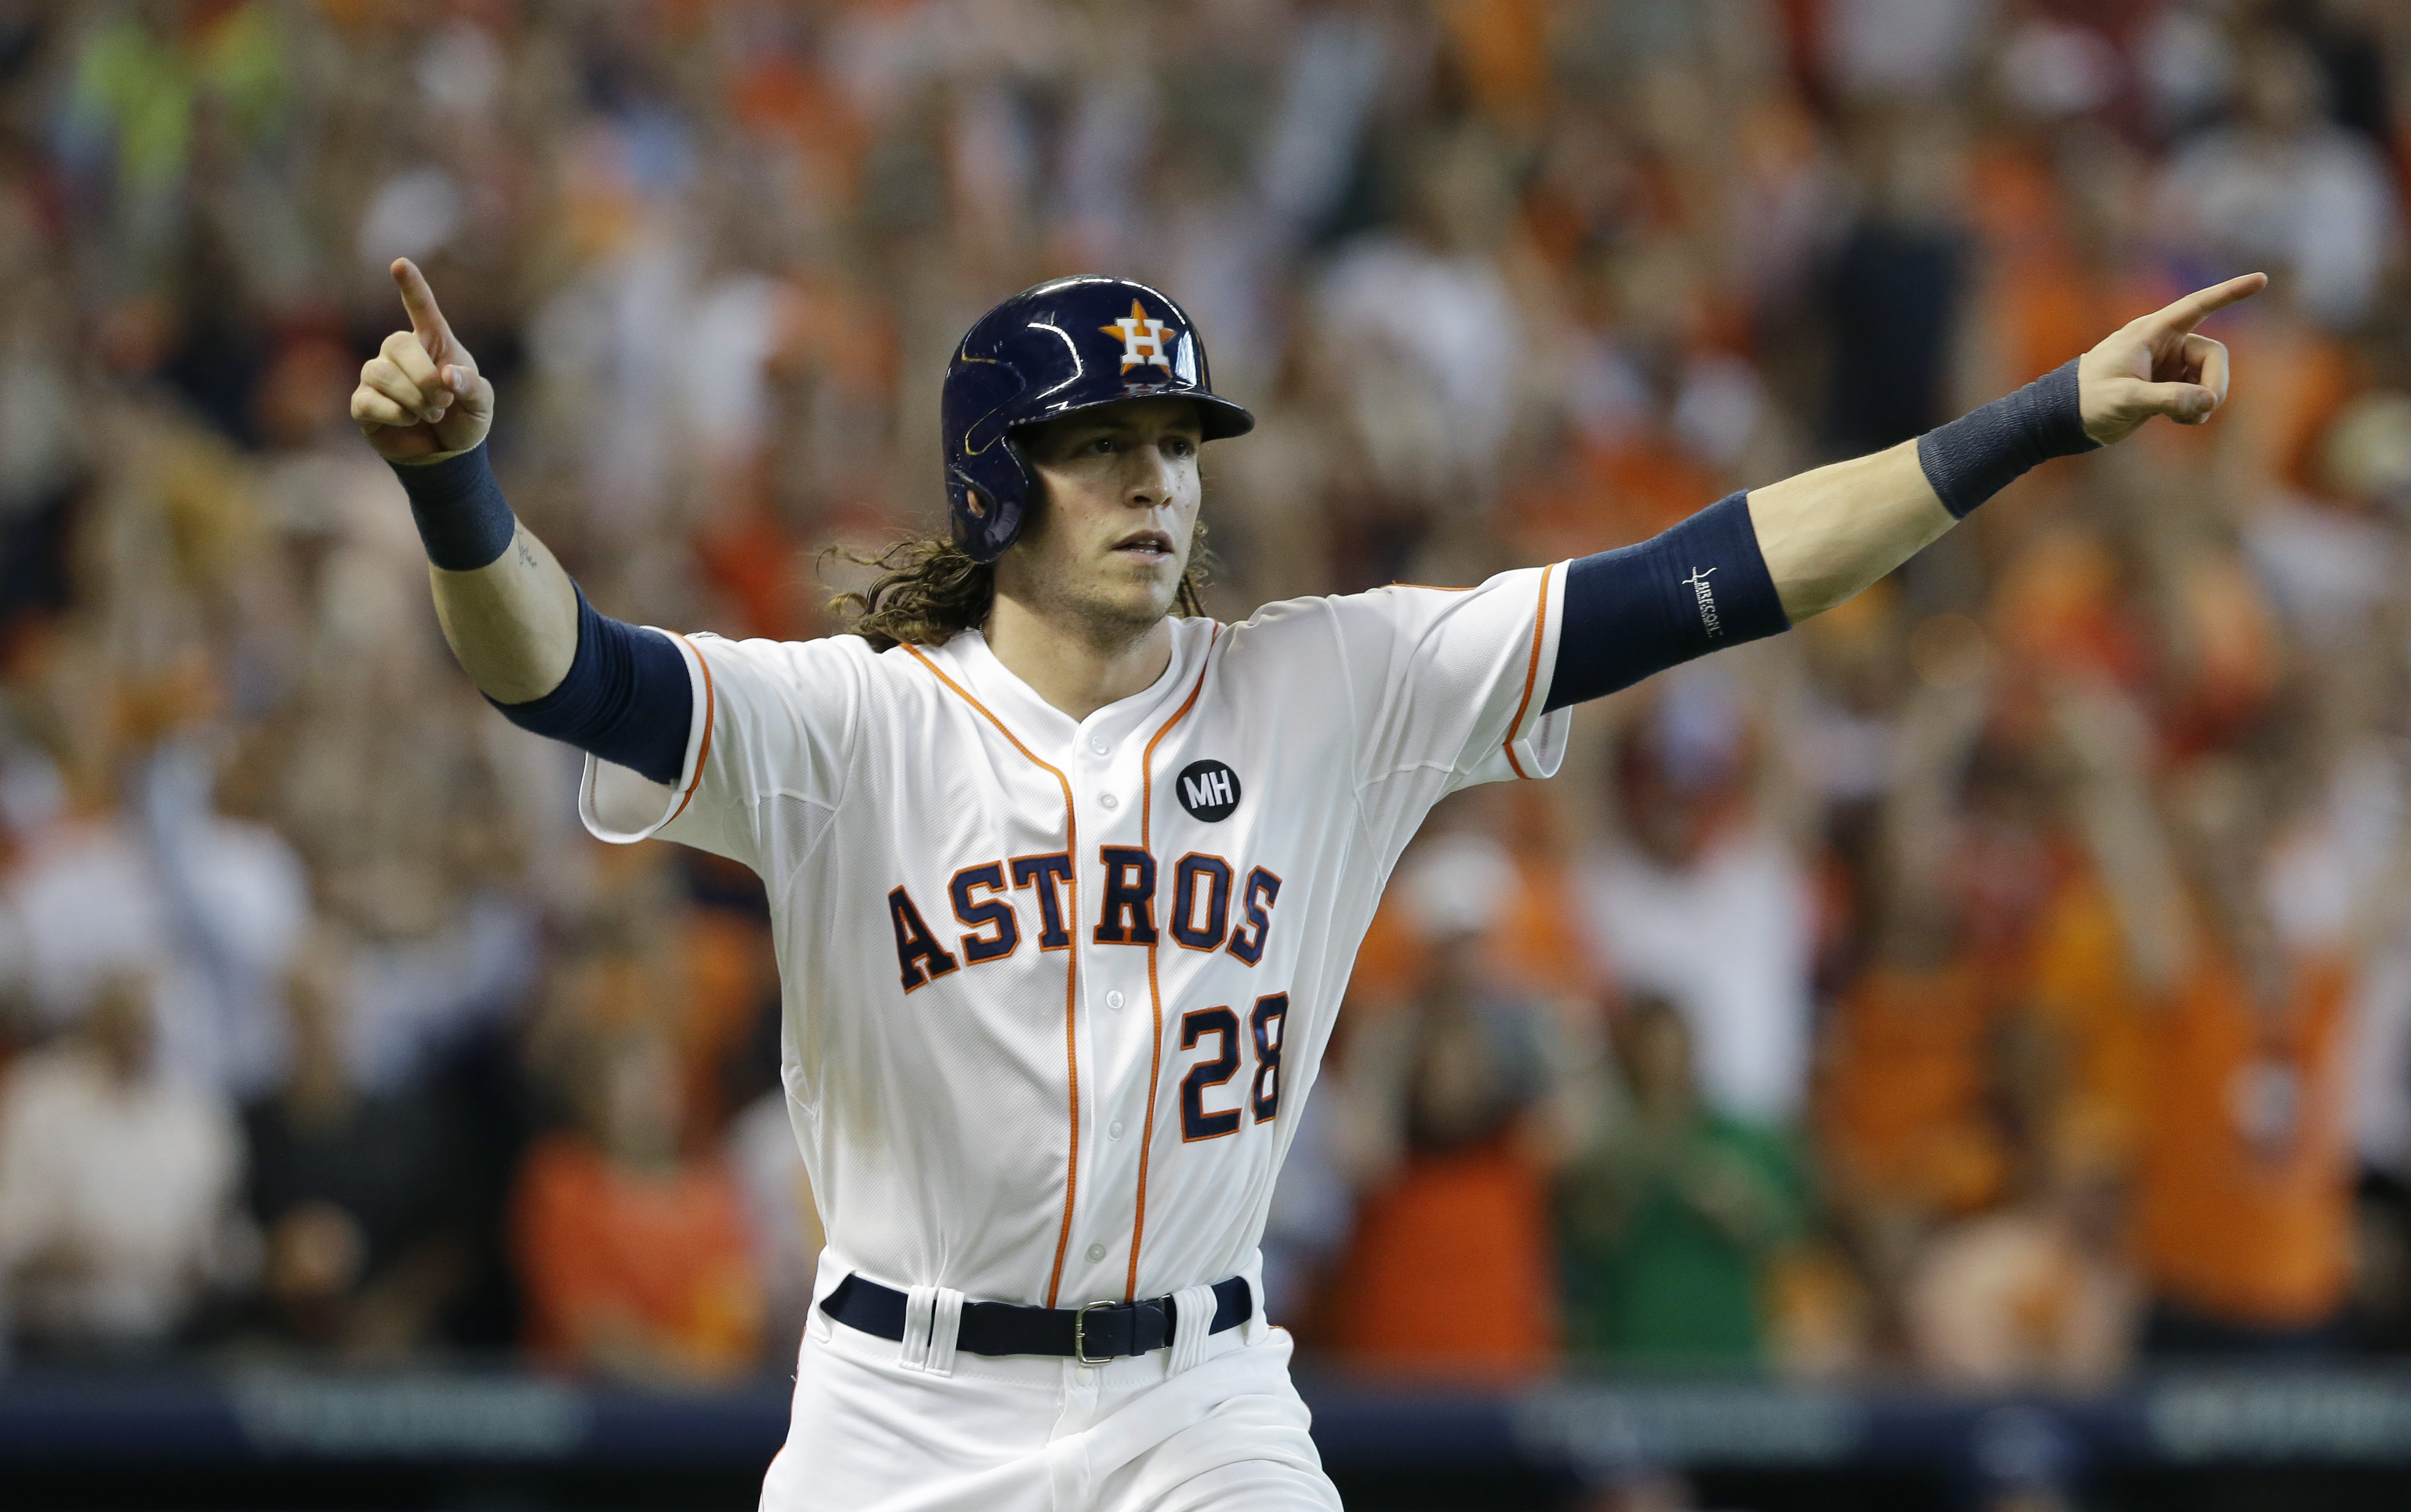 Houston Astros' Colby Rasmus (28) celebrates after hitting a solo home run against the Kansas City Royals in the seventh inning during Game 4 of baseball's American League Division Series, Monday, Oct. 12, 2015, in Houston. (AP Photo/Pat Sullivan)